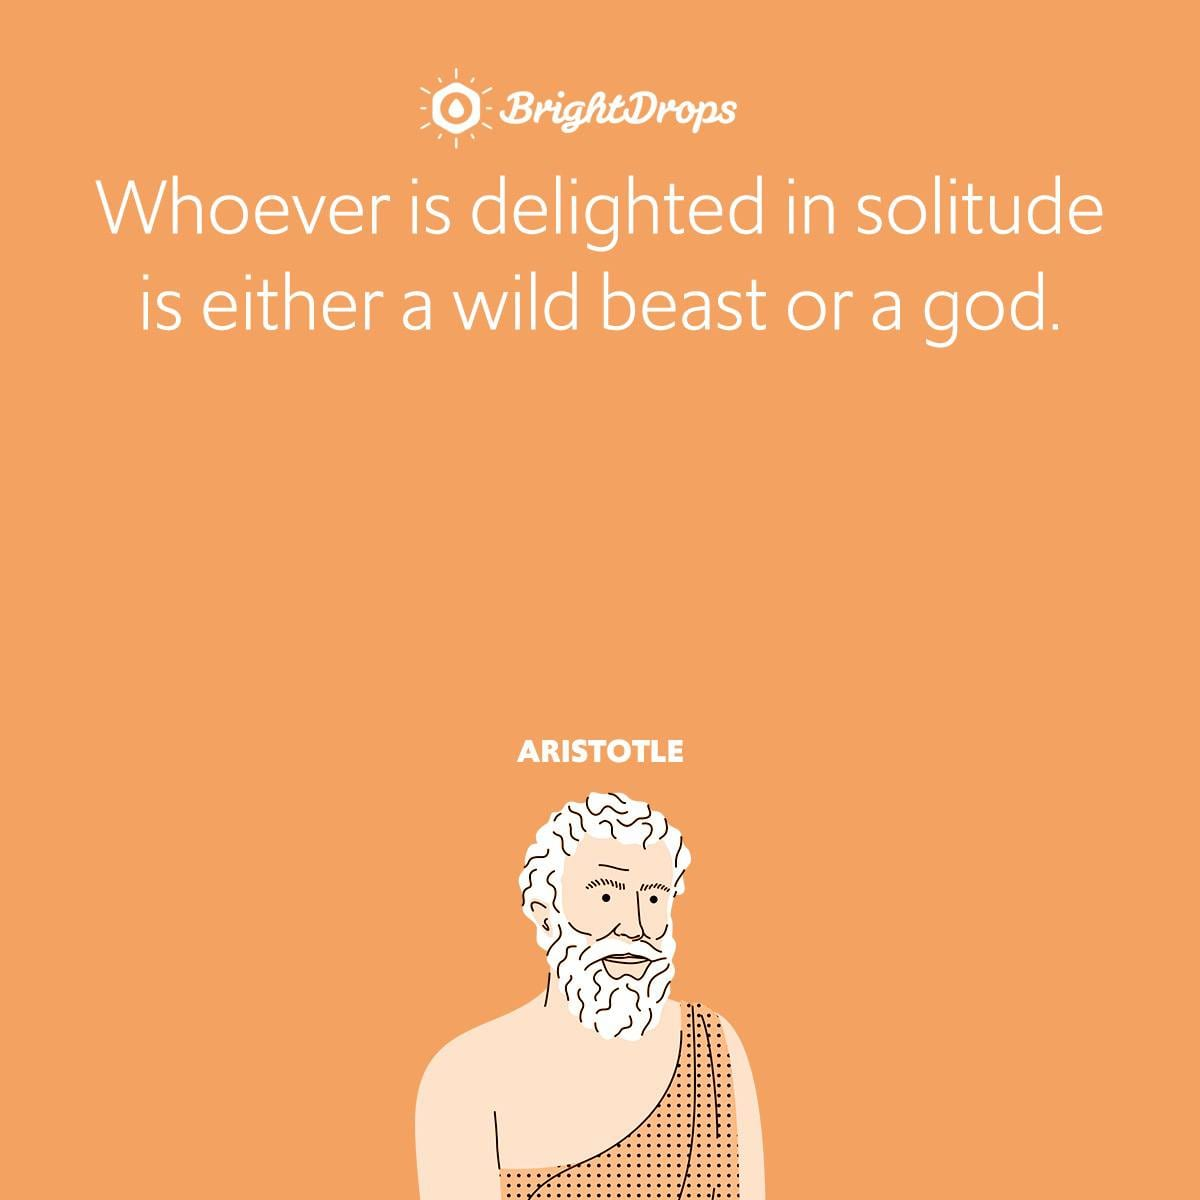 Whoever is delighted in solitude is either a wild beast or a god.